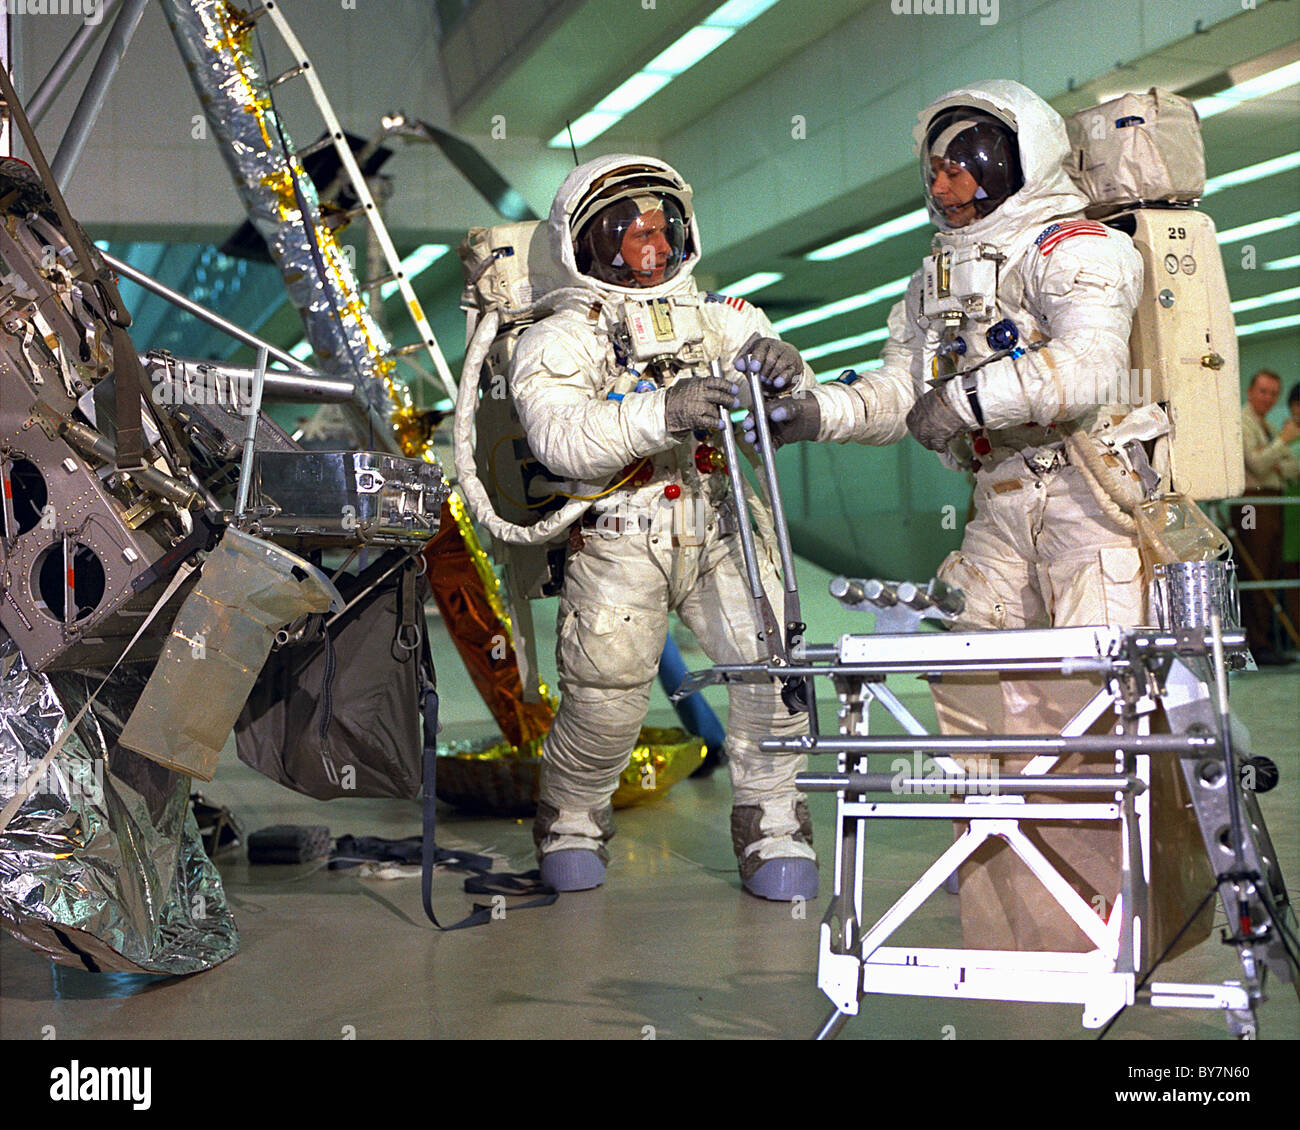 Apollo 12 training, training for extravehicular activity when on the moon - Stock Image